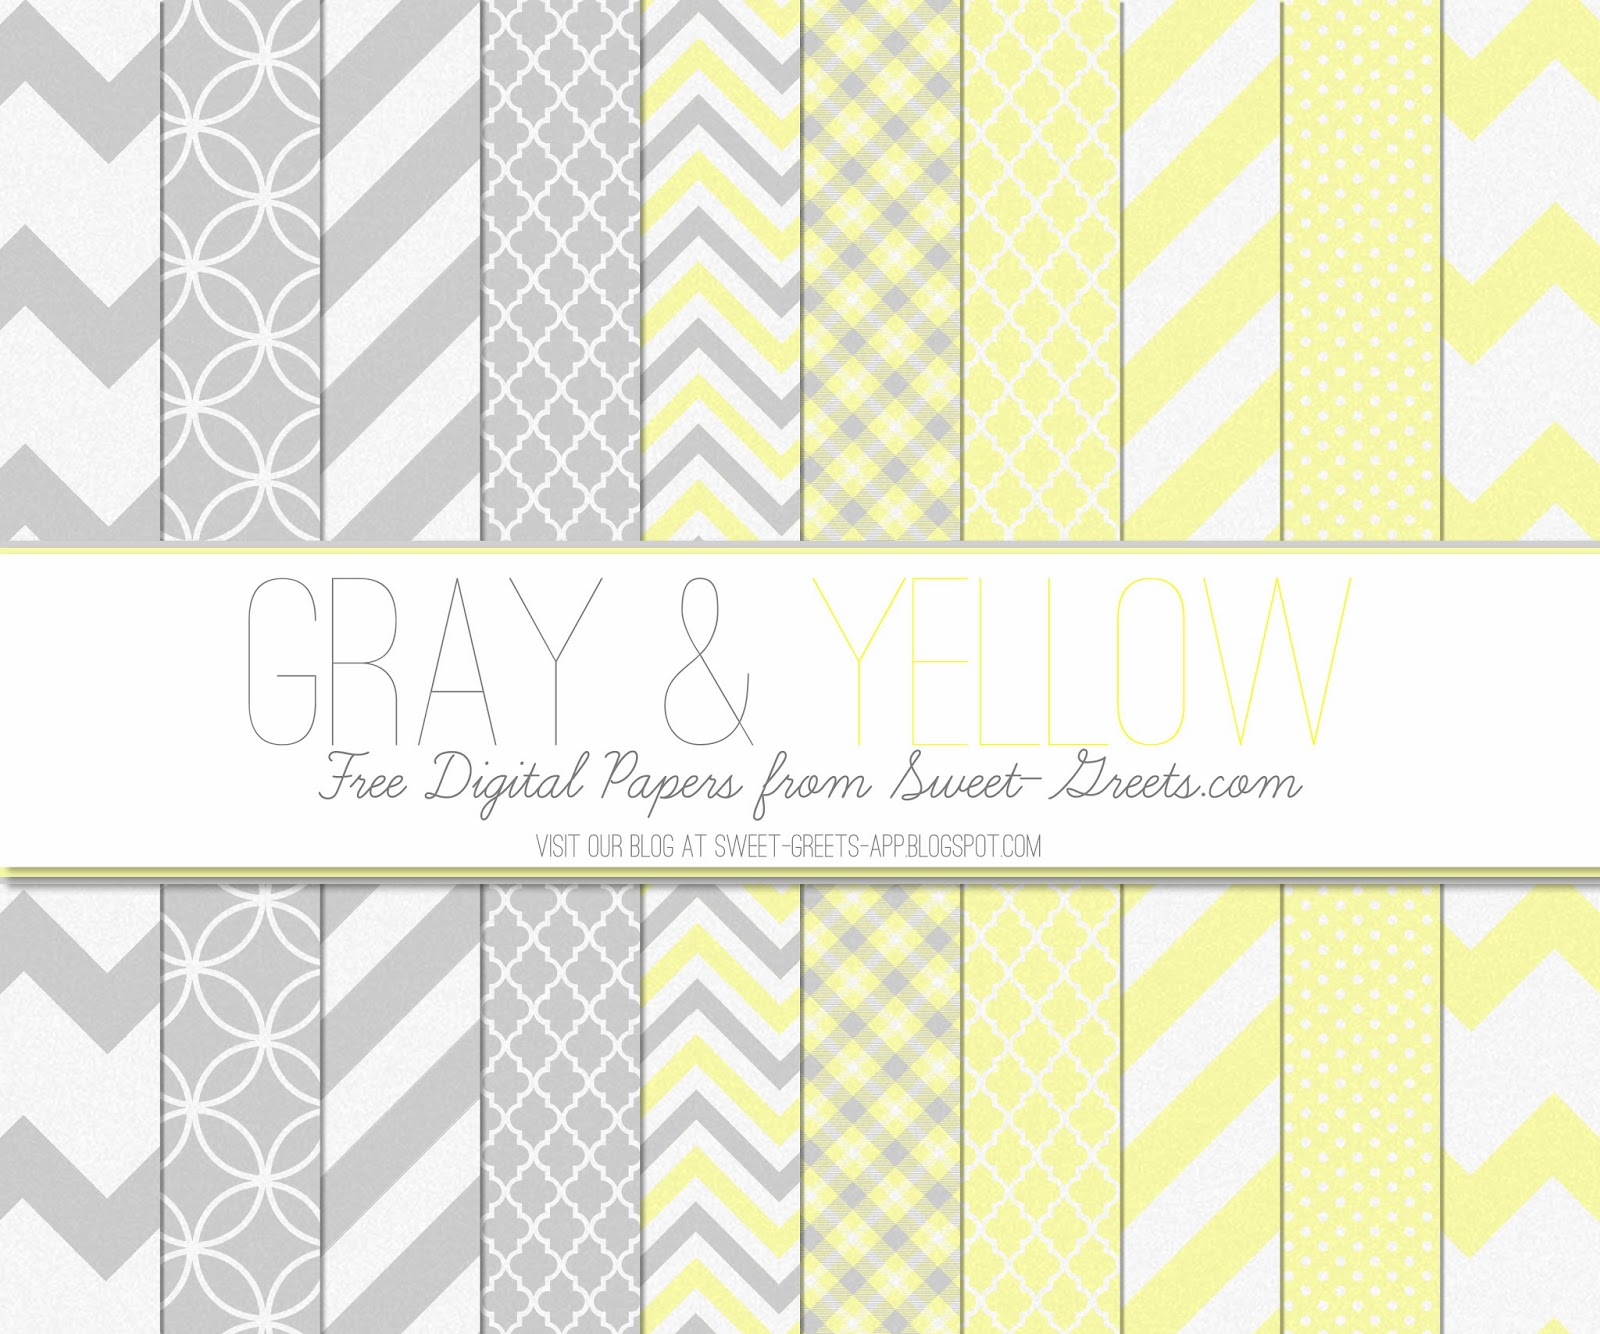 Just Peachy Designs: Free Digital Paper: Gray and Yellow